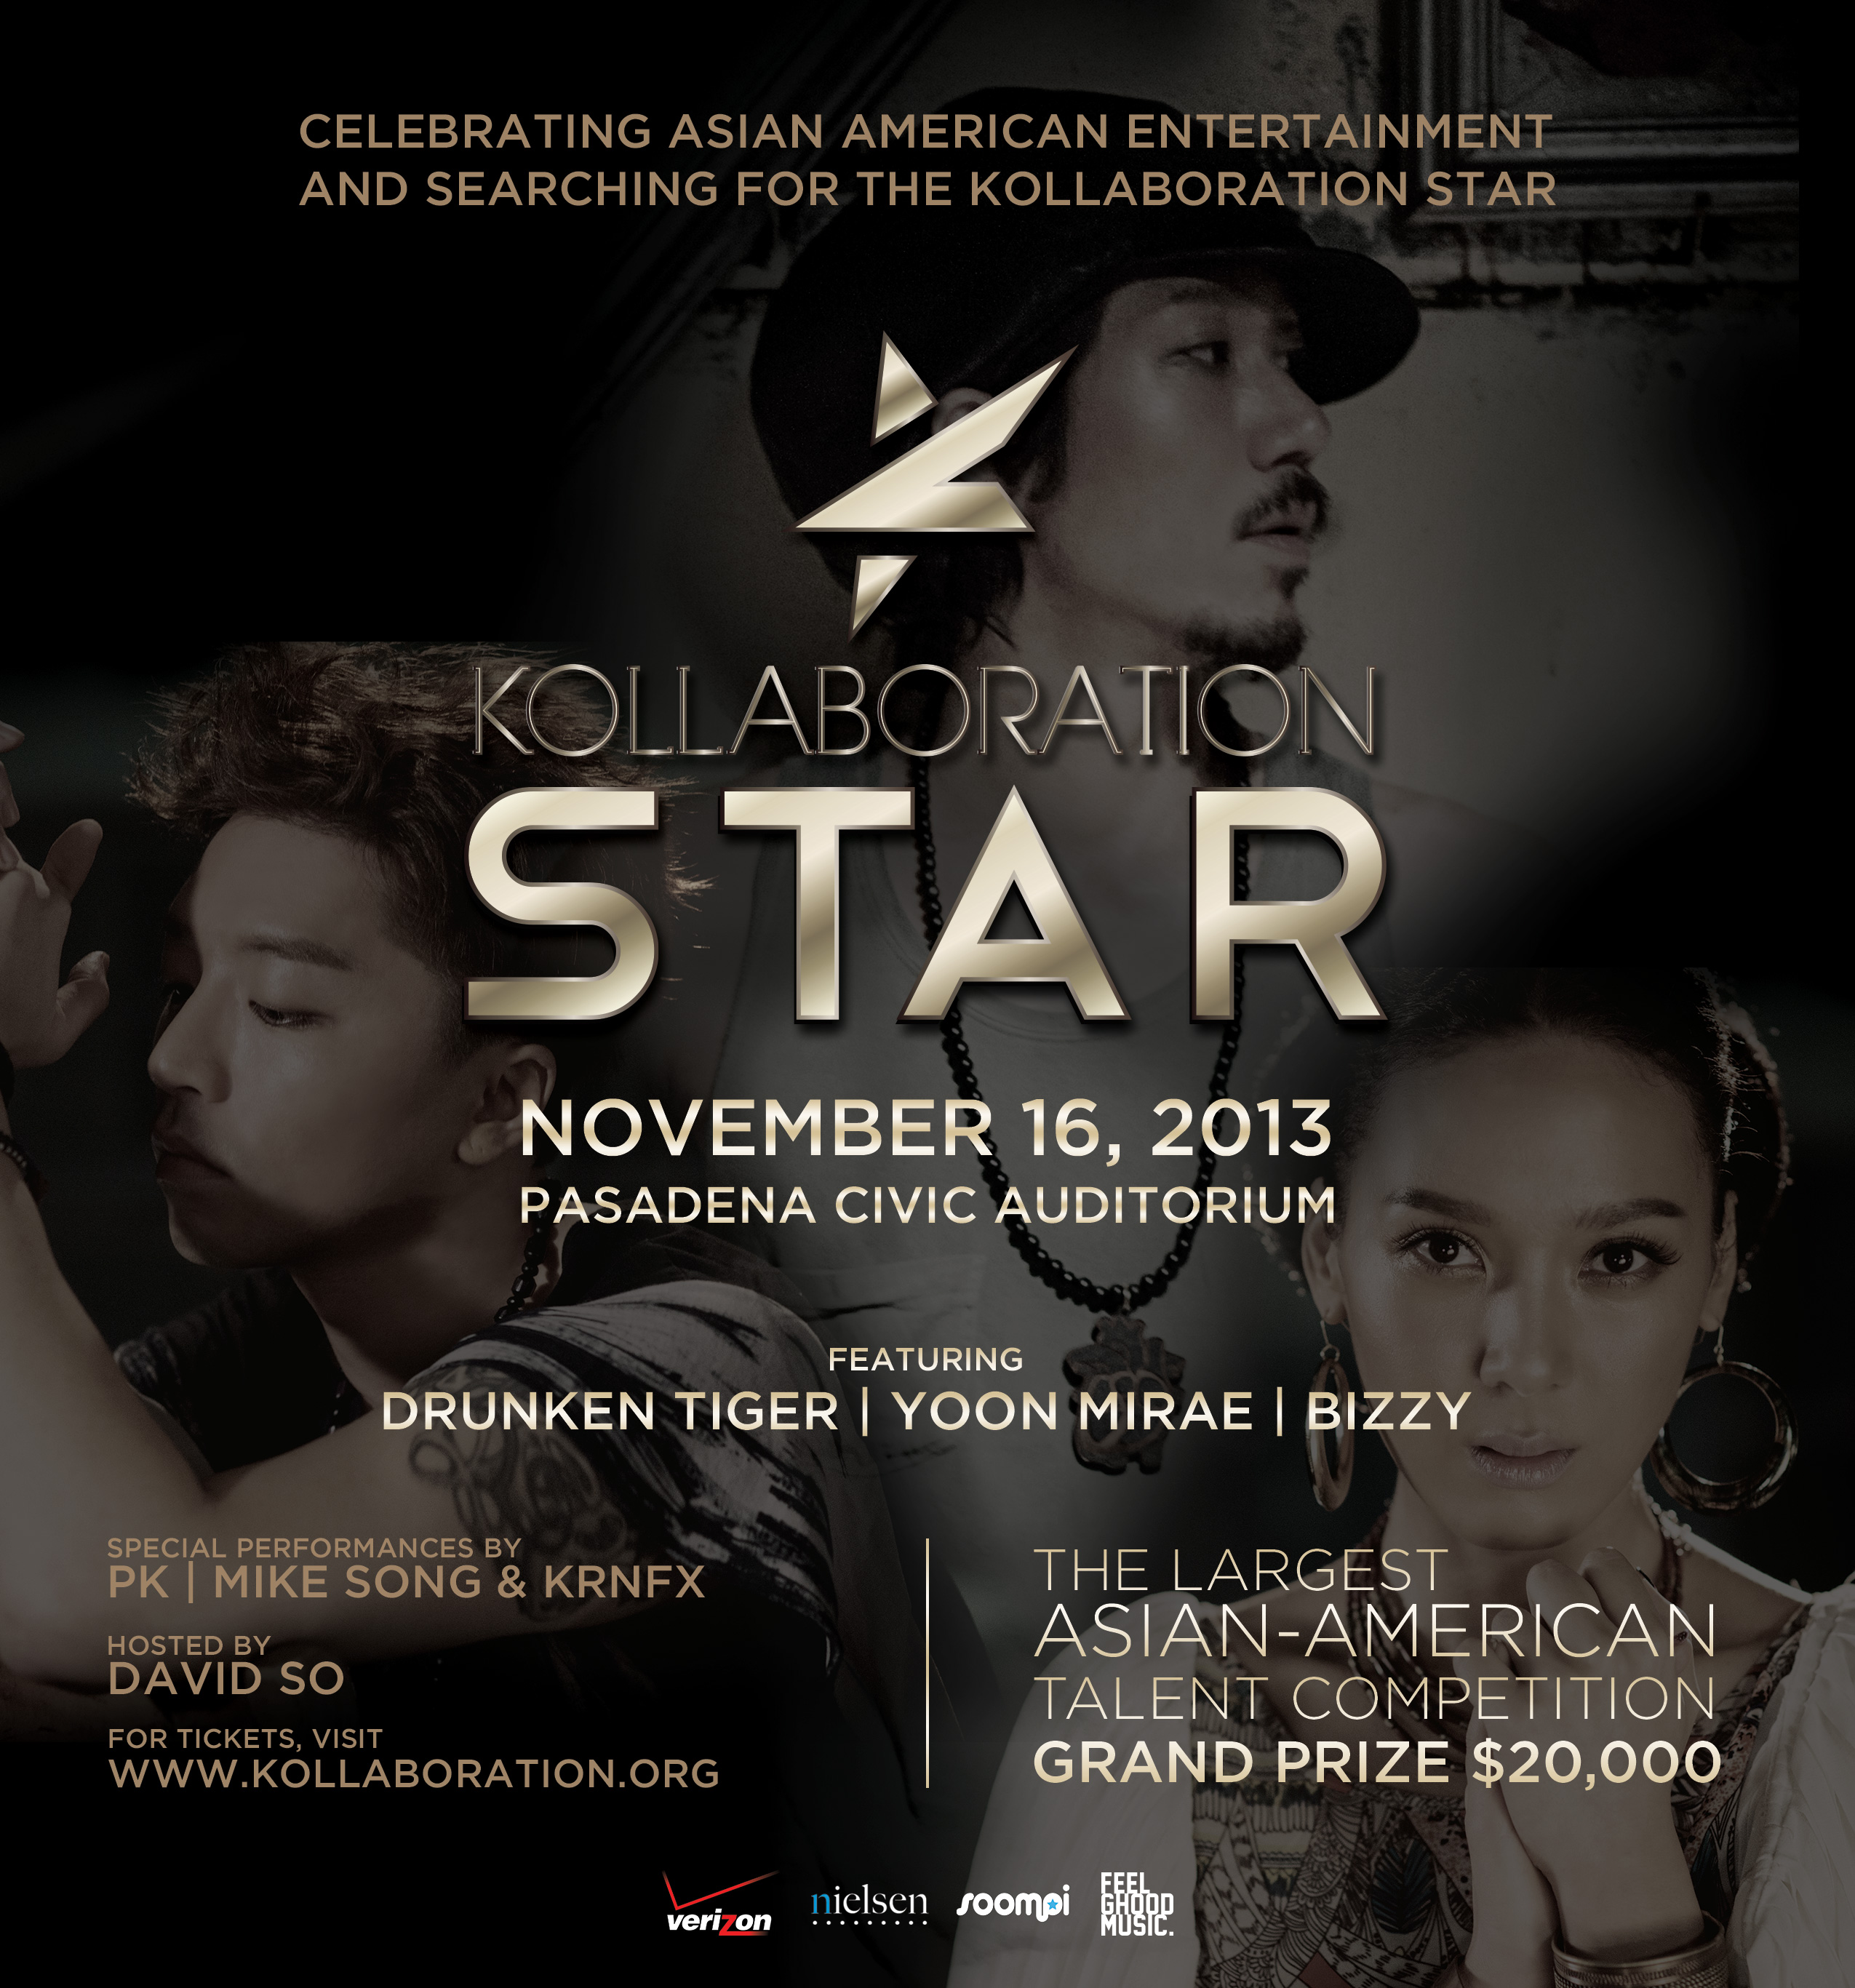 KollaborationStar2013-v1